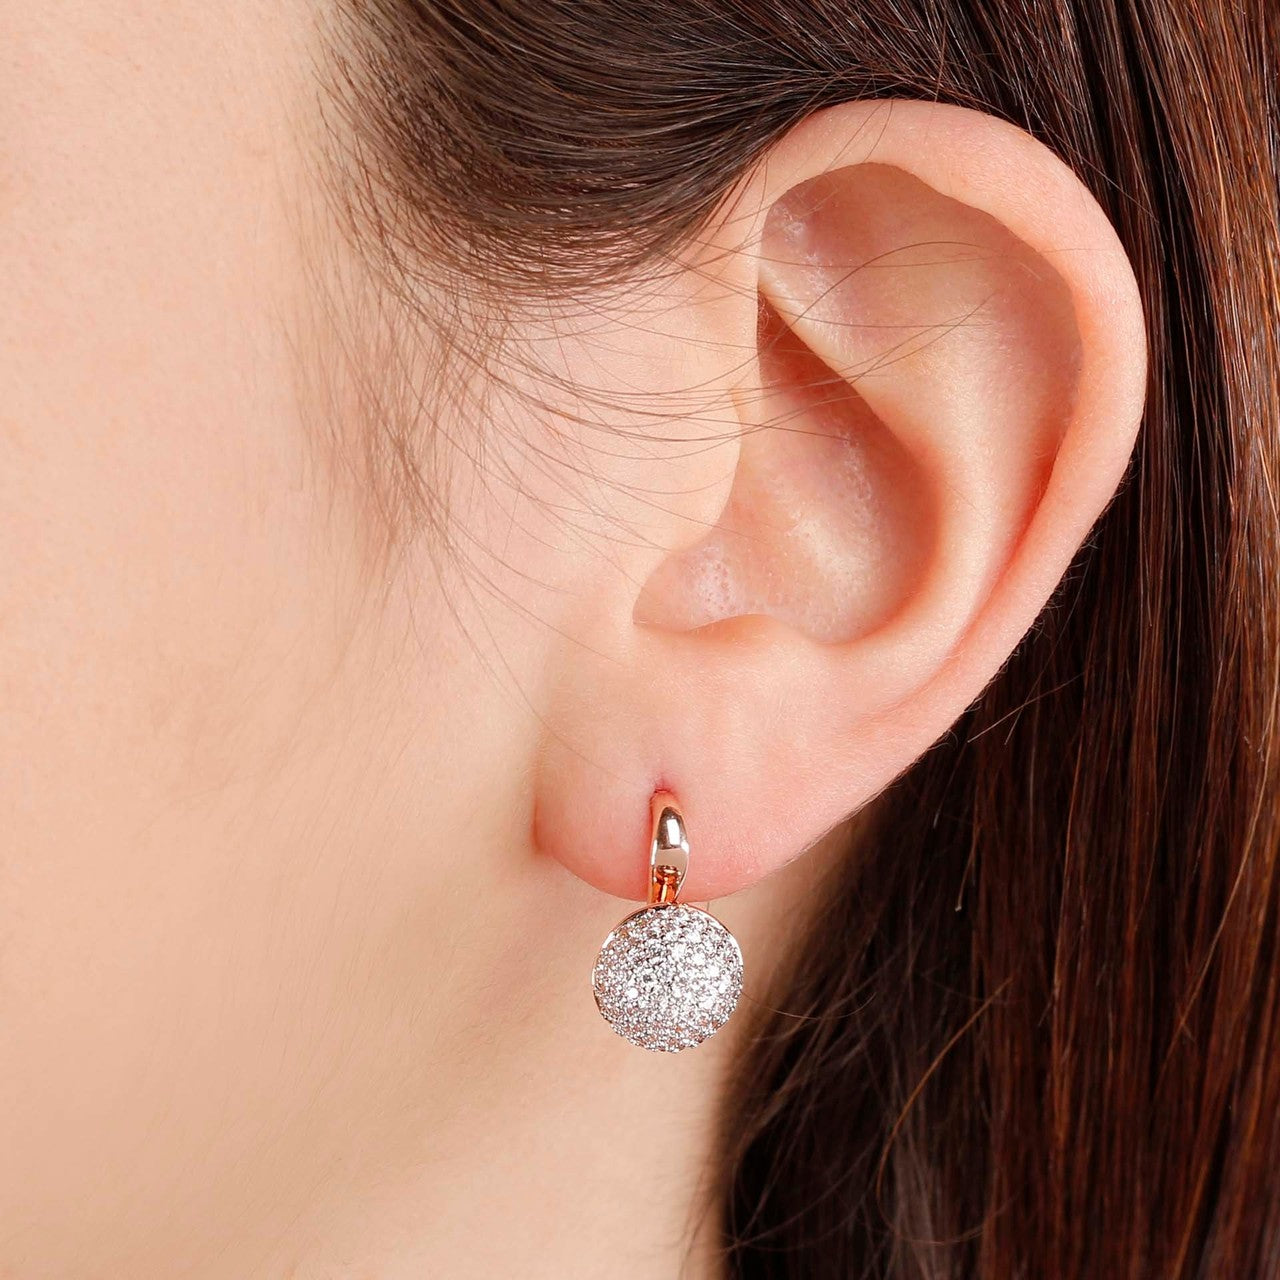 worn Pave Stud Earrings CUBIC ZIRCONIA